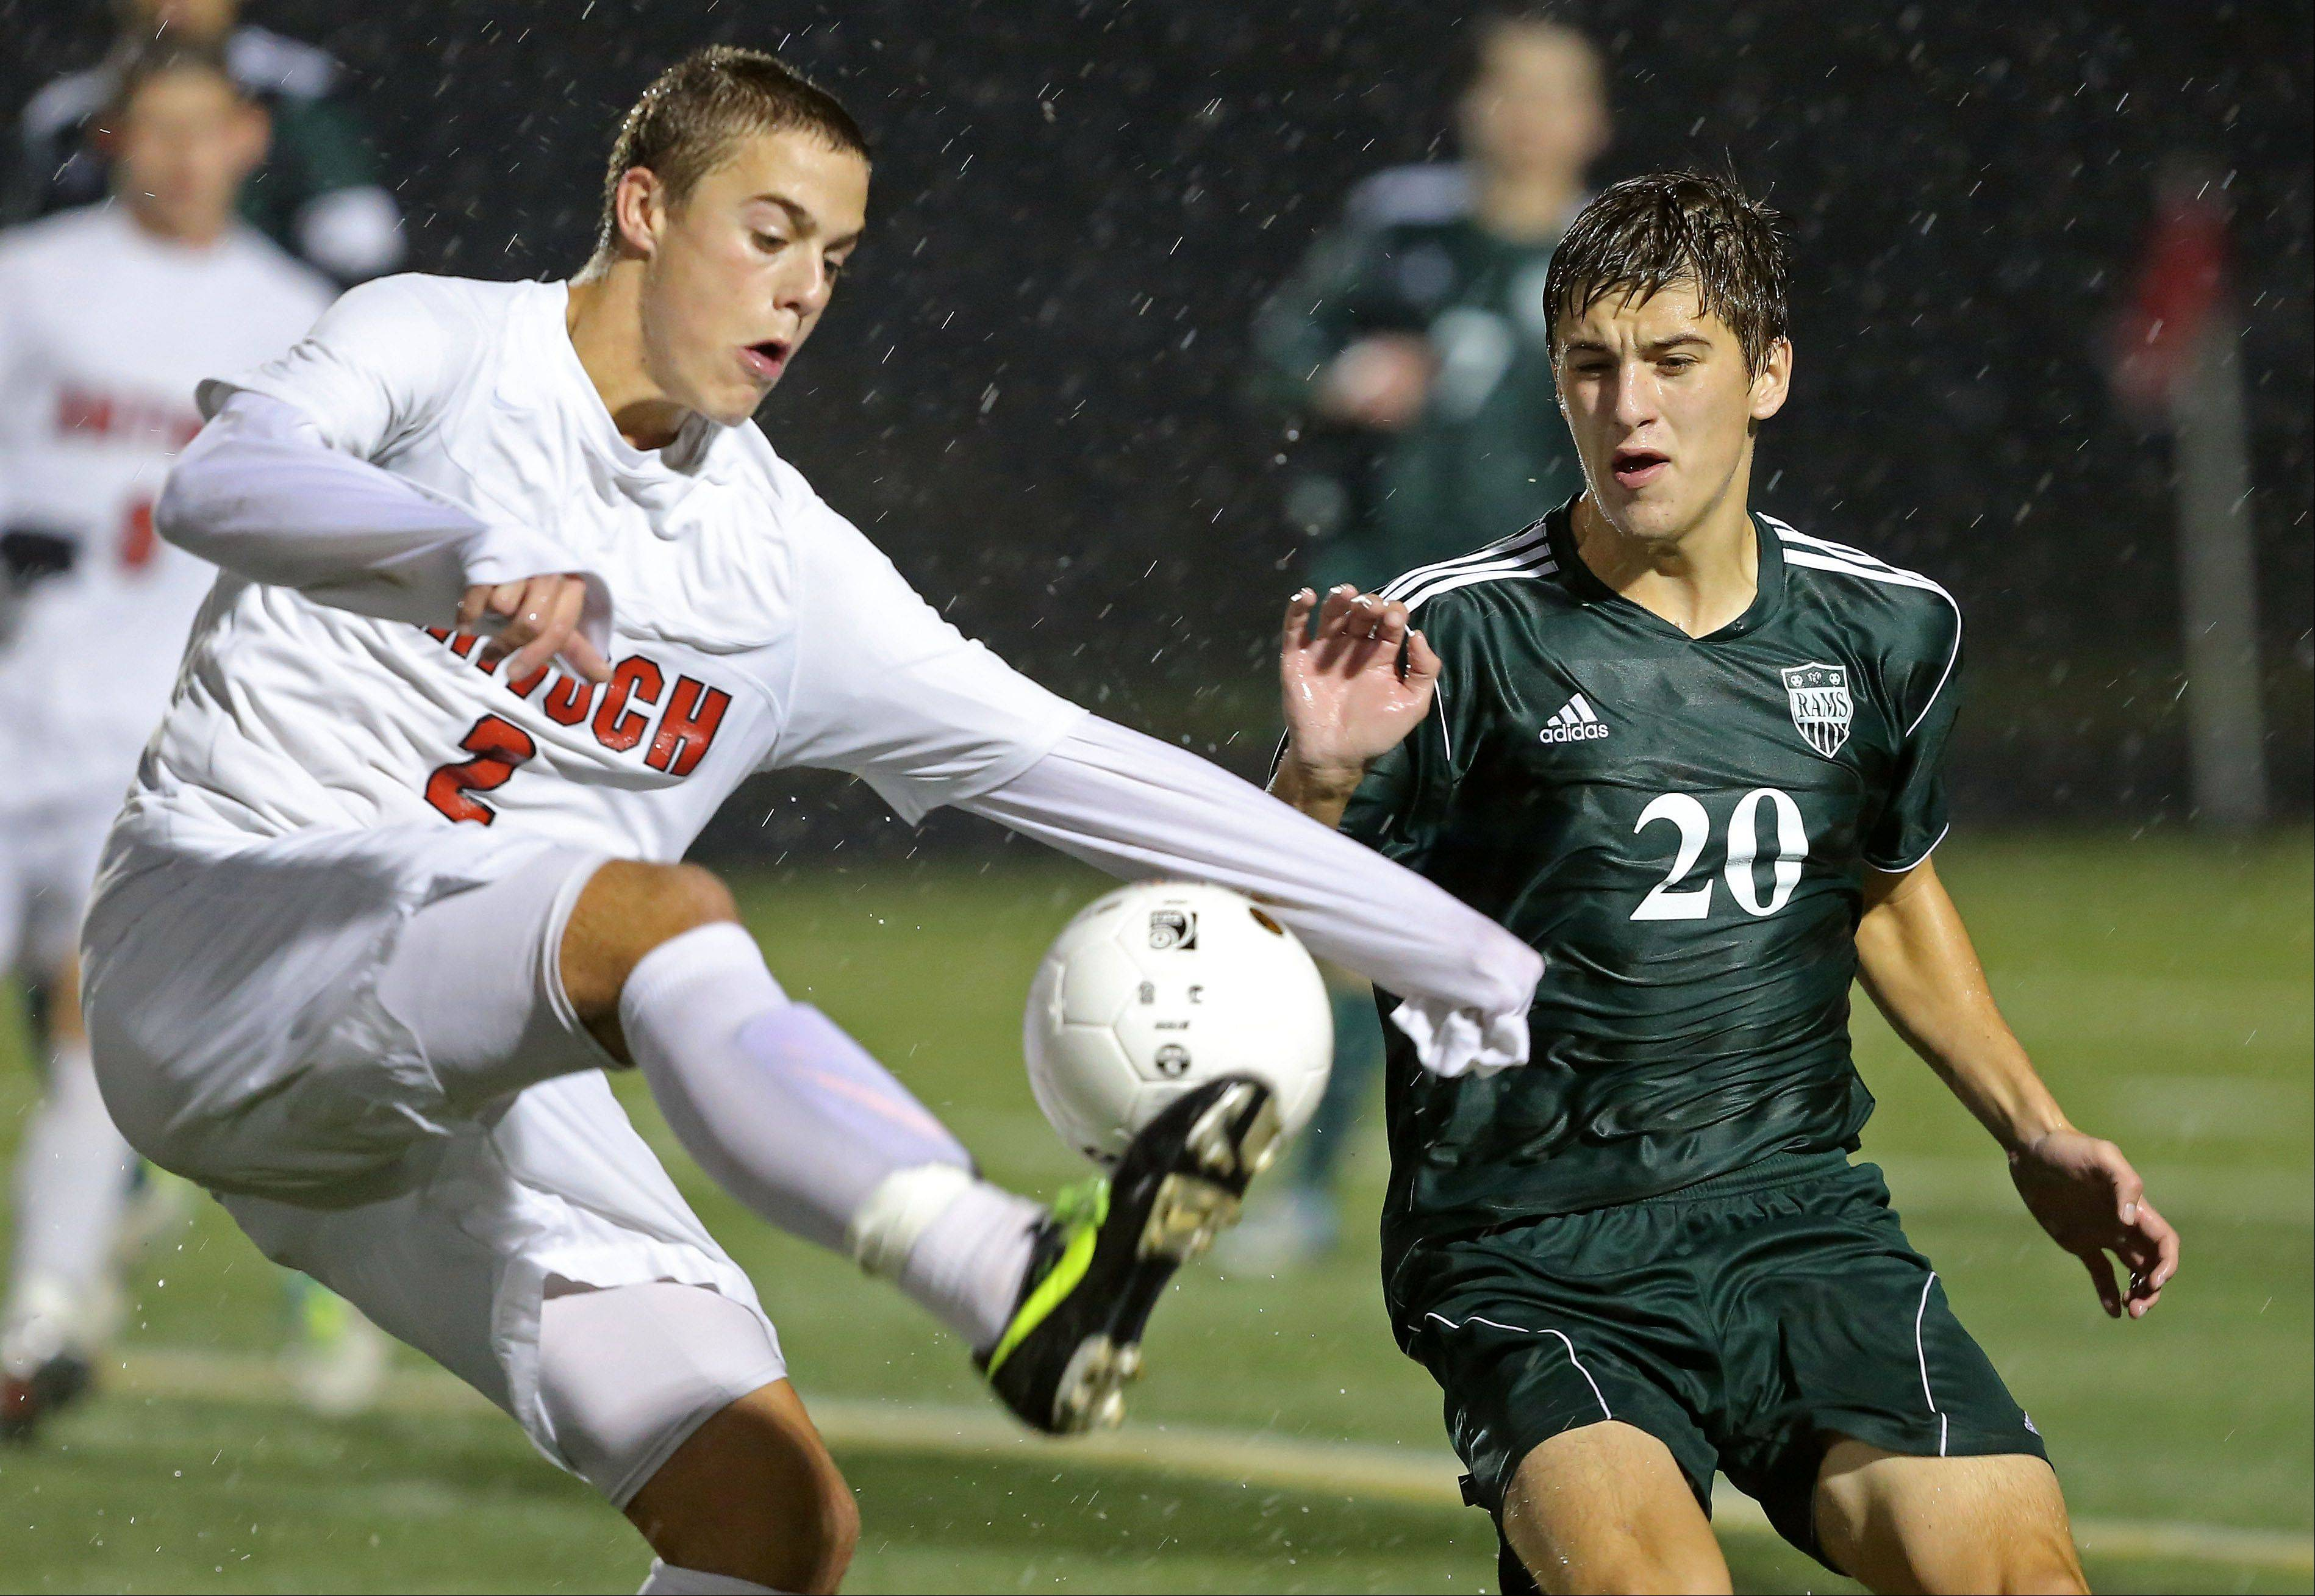 Antioch's Eric Pedersen, left, tries to gain control of the ball ahead of Grayslake Central's Paul Kulis during Wednesday's Class 3A sectional soccer semifinal in Grayslake.